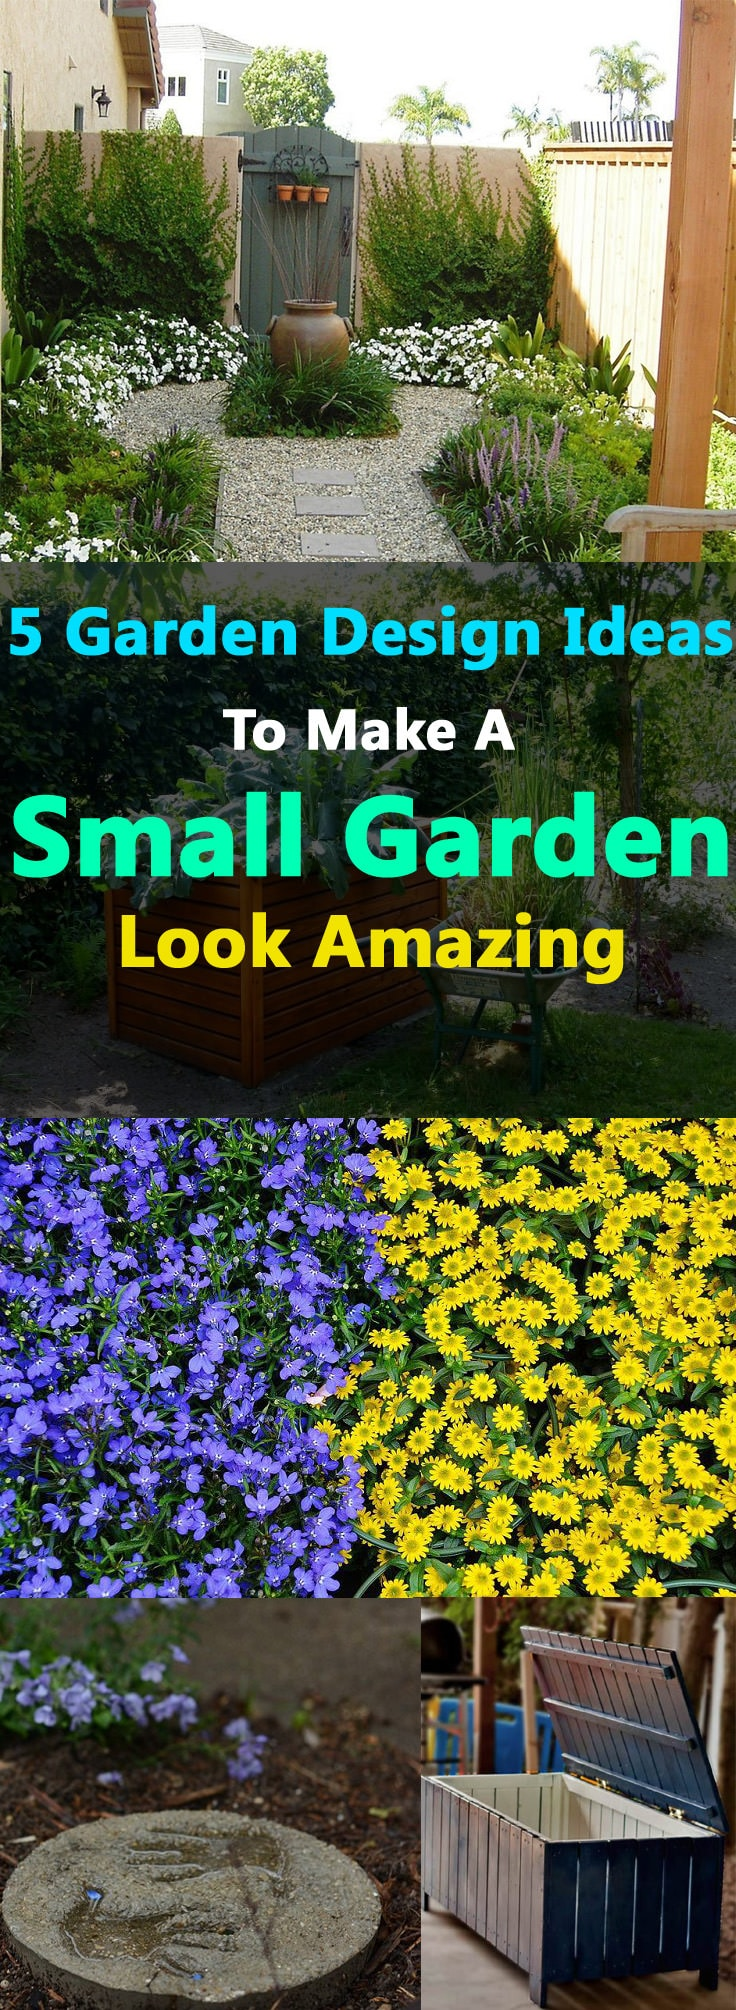 If You Have A Yard Or Garden That Is Small And There Is A Problem Of